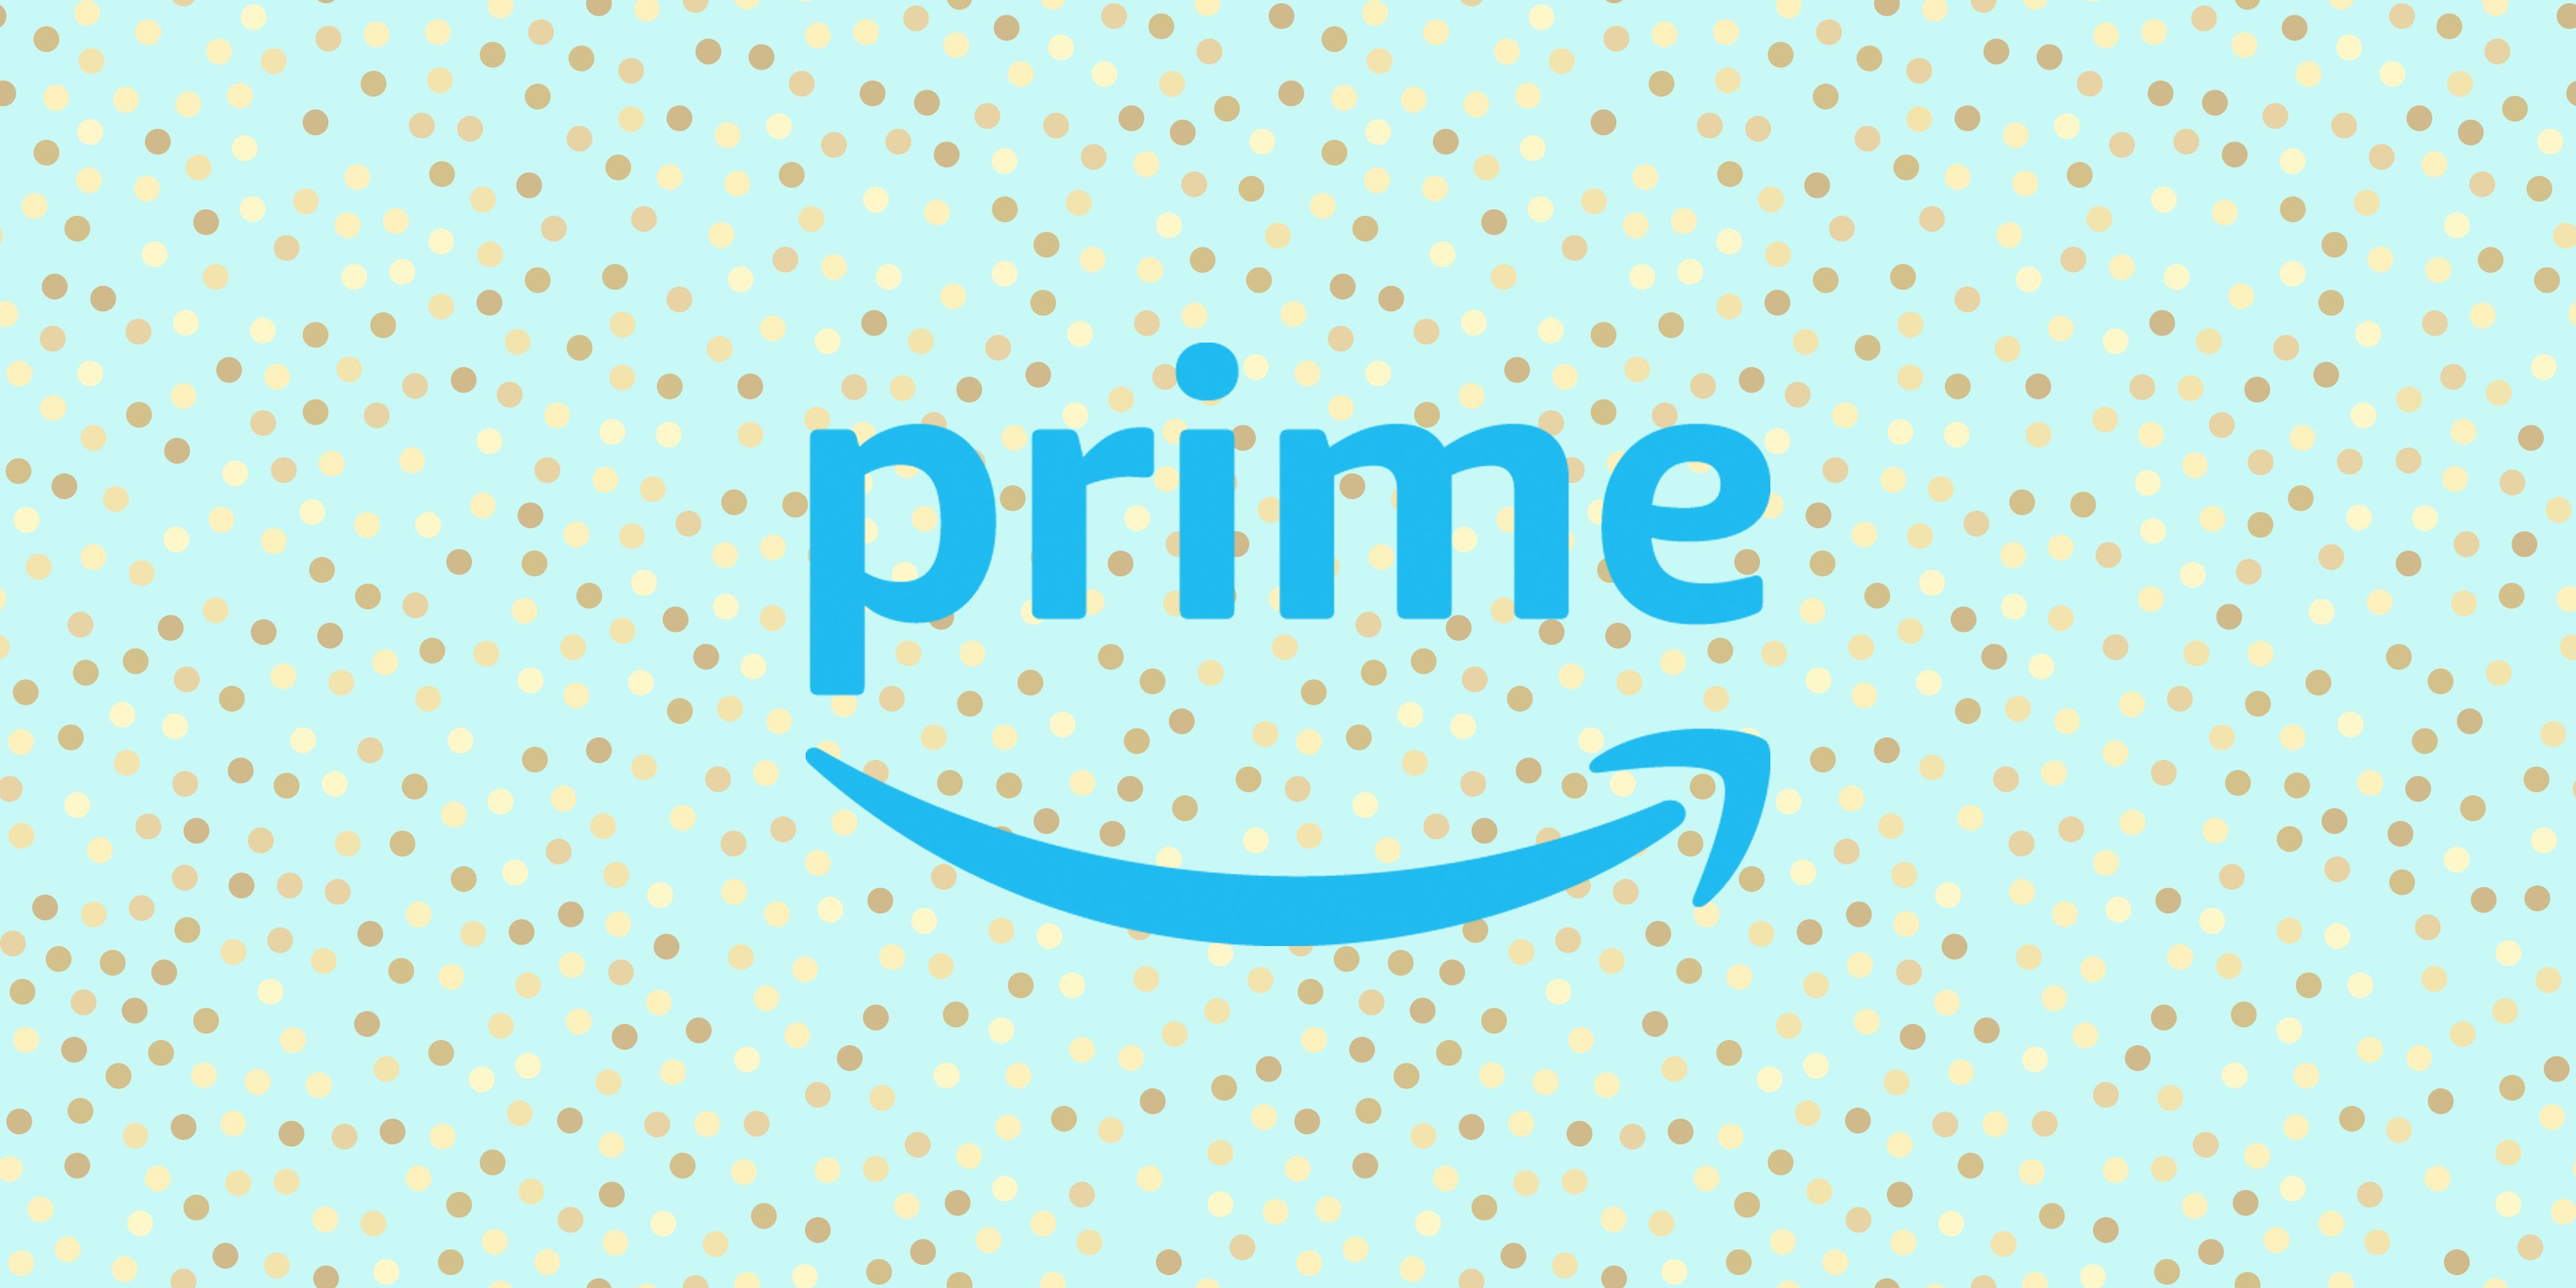 How to Sign Up for Amazon Prime - Sign Up for Amazon Prime